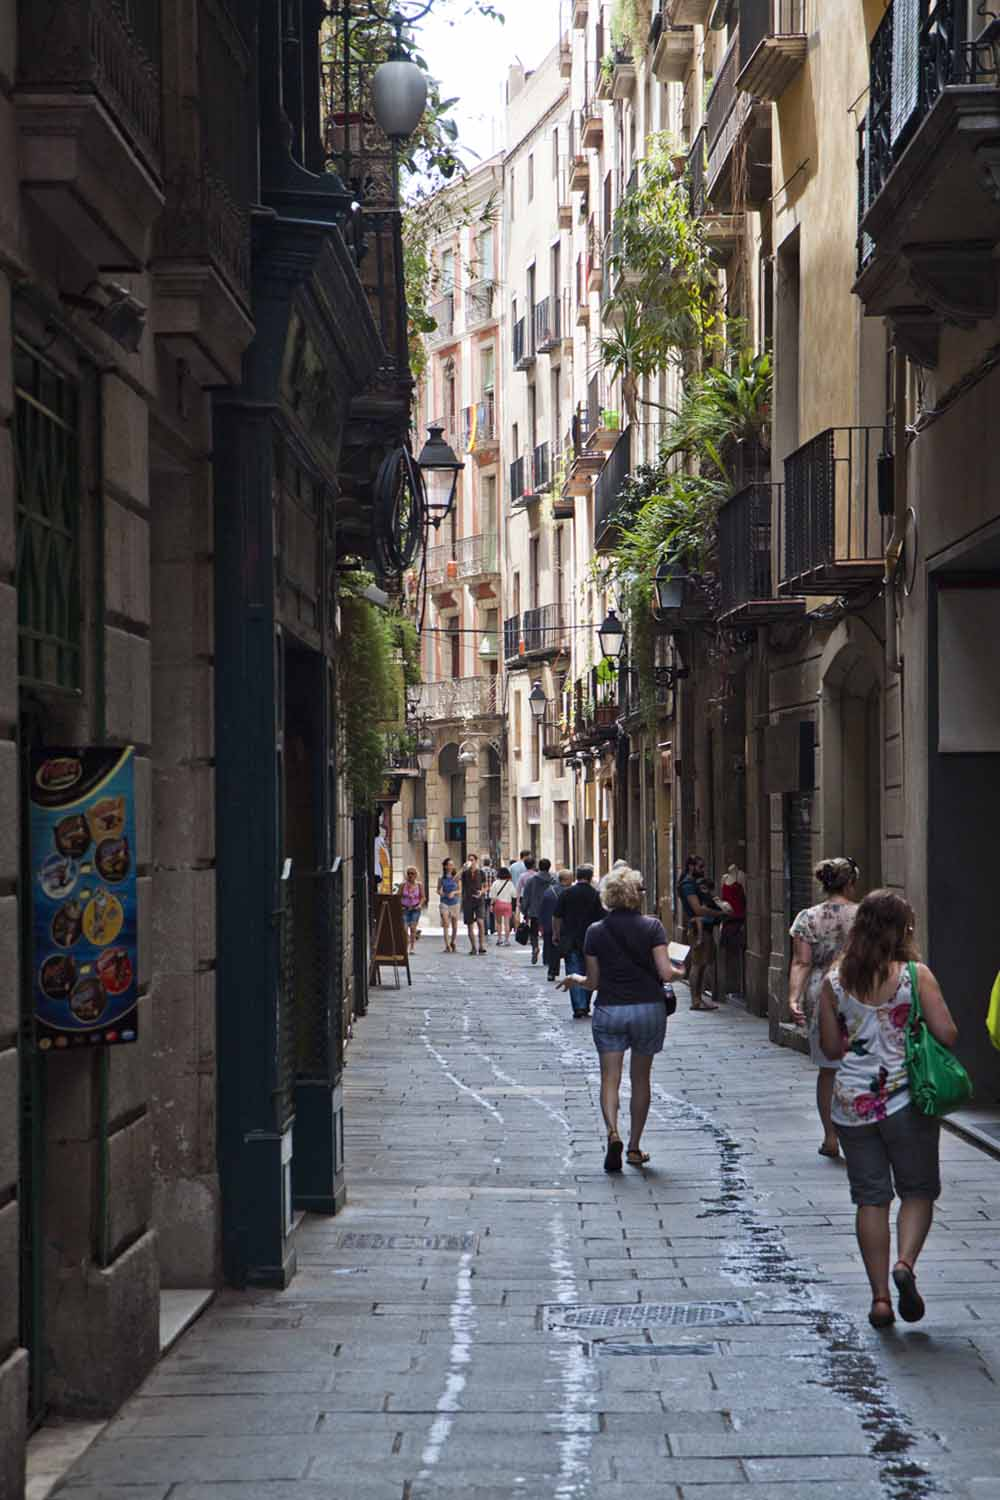 Laneway in the Barri Gòtic, Barcelona